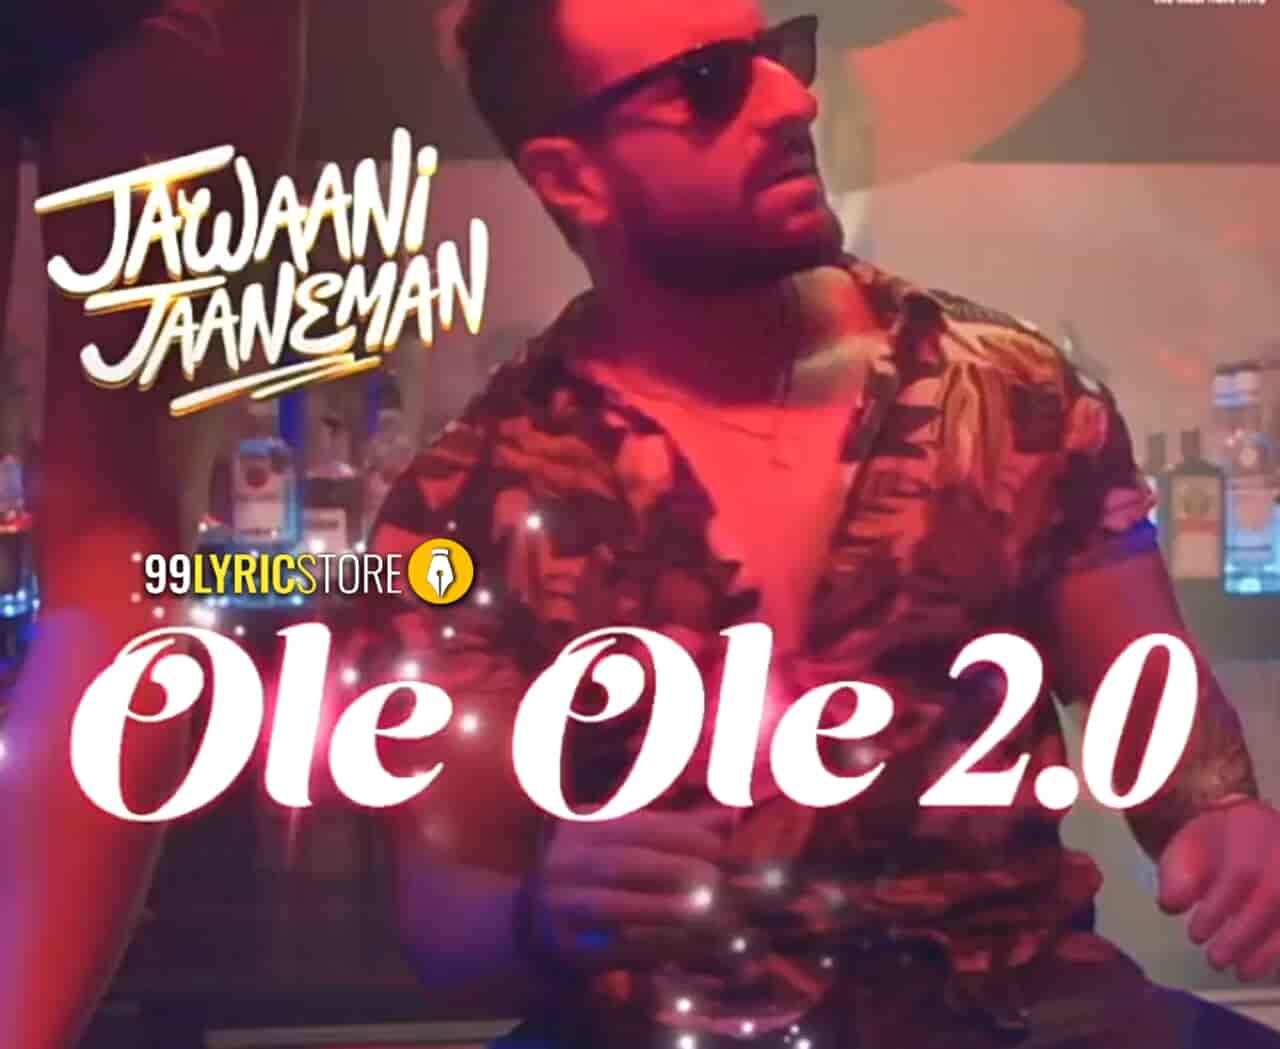 Ole Ole 2.0 Song Images From Movie Jawaani Jaaneman